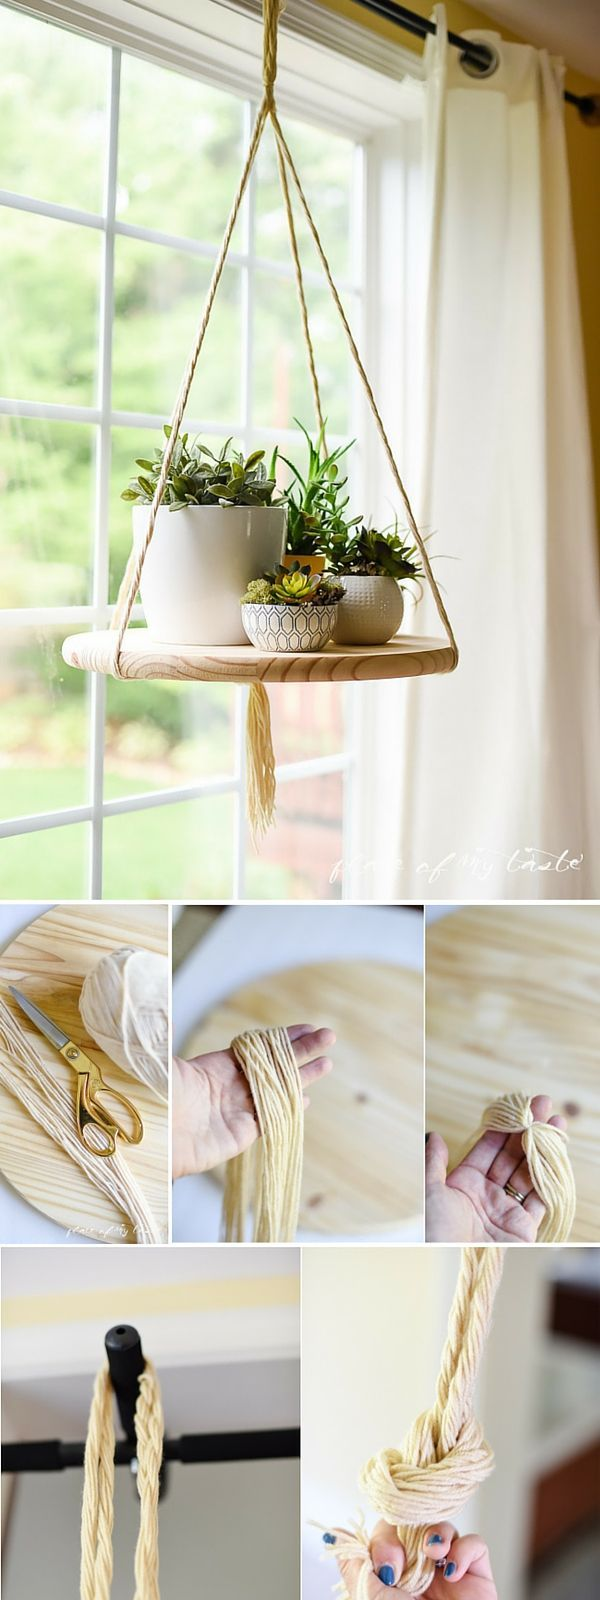 The 25 best crafts home ideas on pinterest diy crafts at home this is an amazing and very simple project and fun home decor piece as well find this pin and more on diy solutioingenieria Image collections